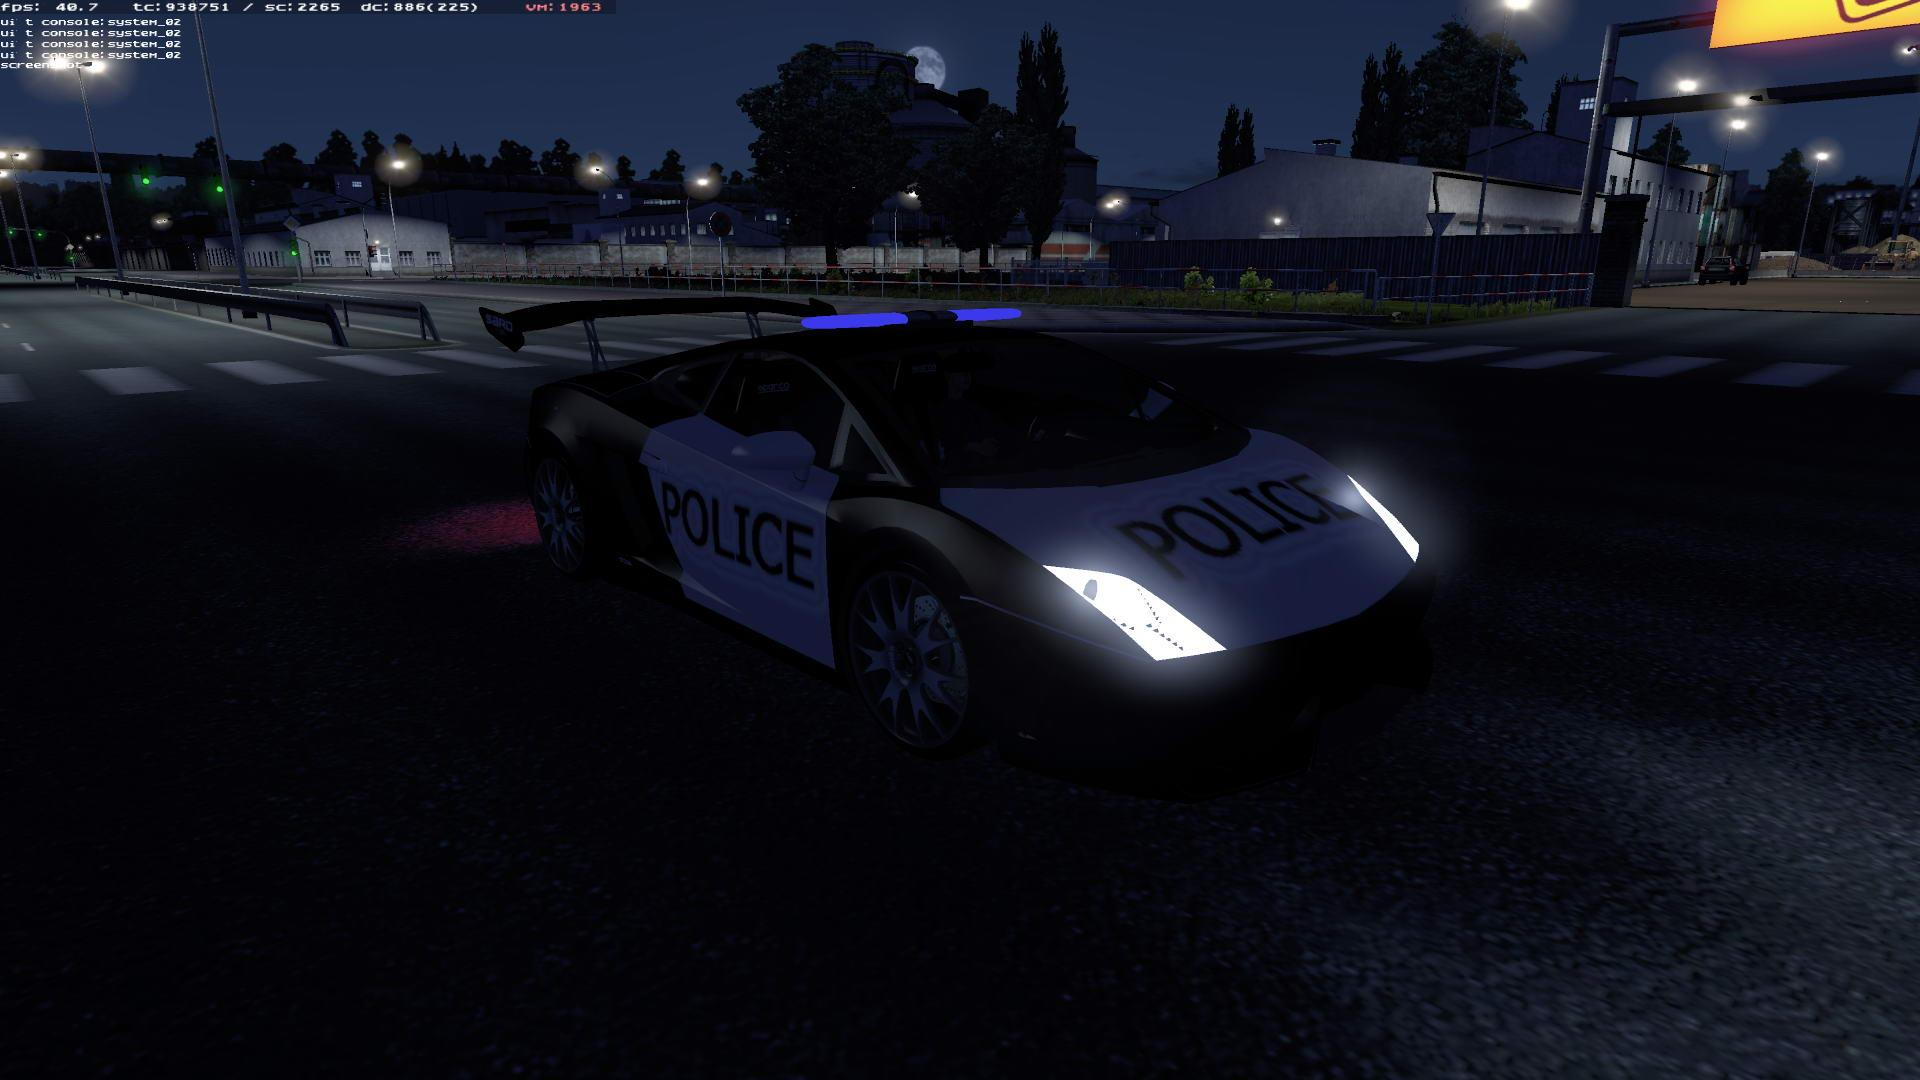 lamborghini-police-ai-traffic-car-for-1-19-x_2